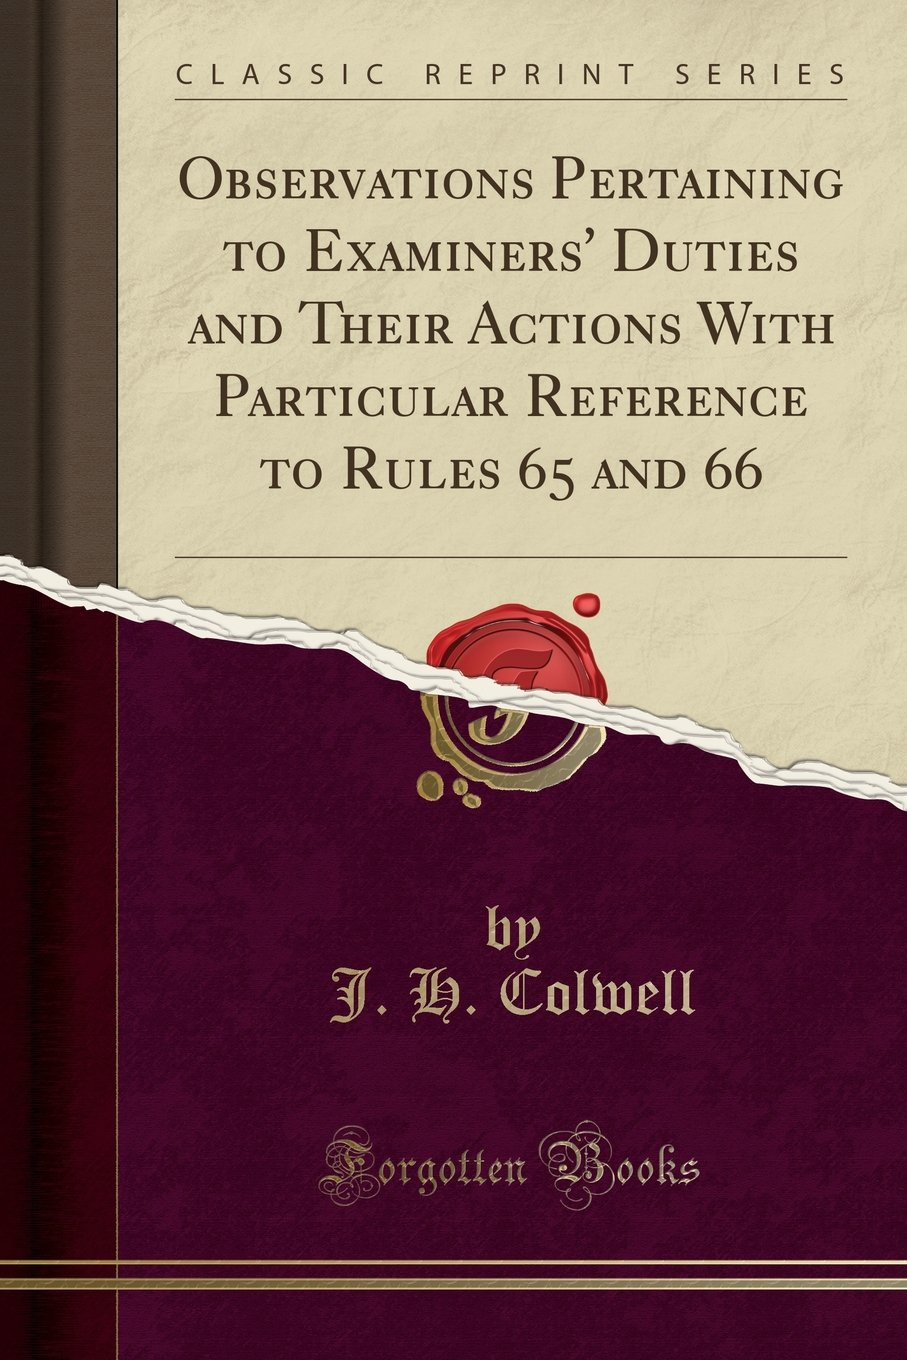 Read Online Observations Pertaining to Examiners' Duties and Their Actions With Particular Reference to Rules 65 and 66 (Classic Reprint) pdf epub